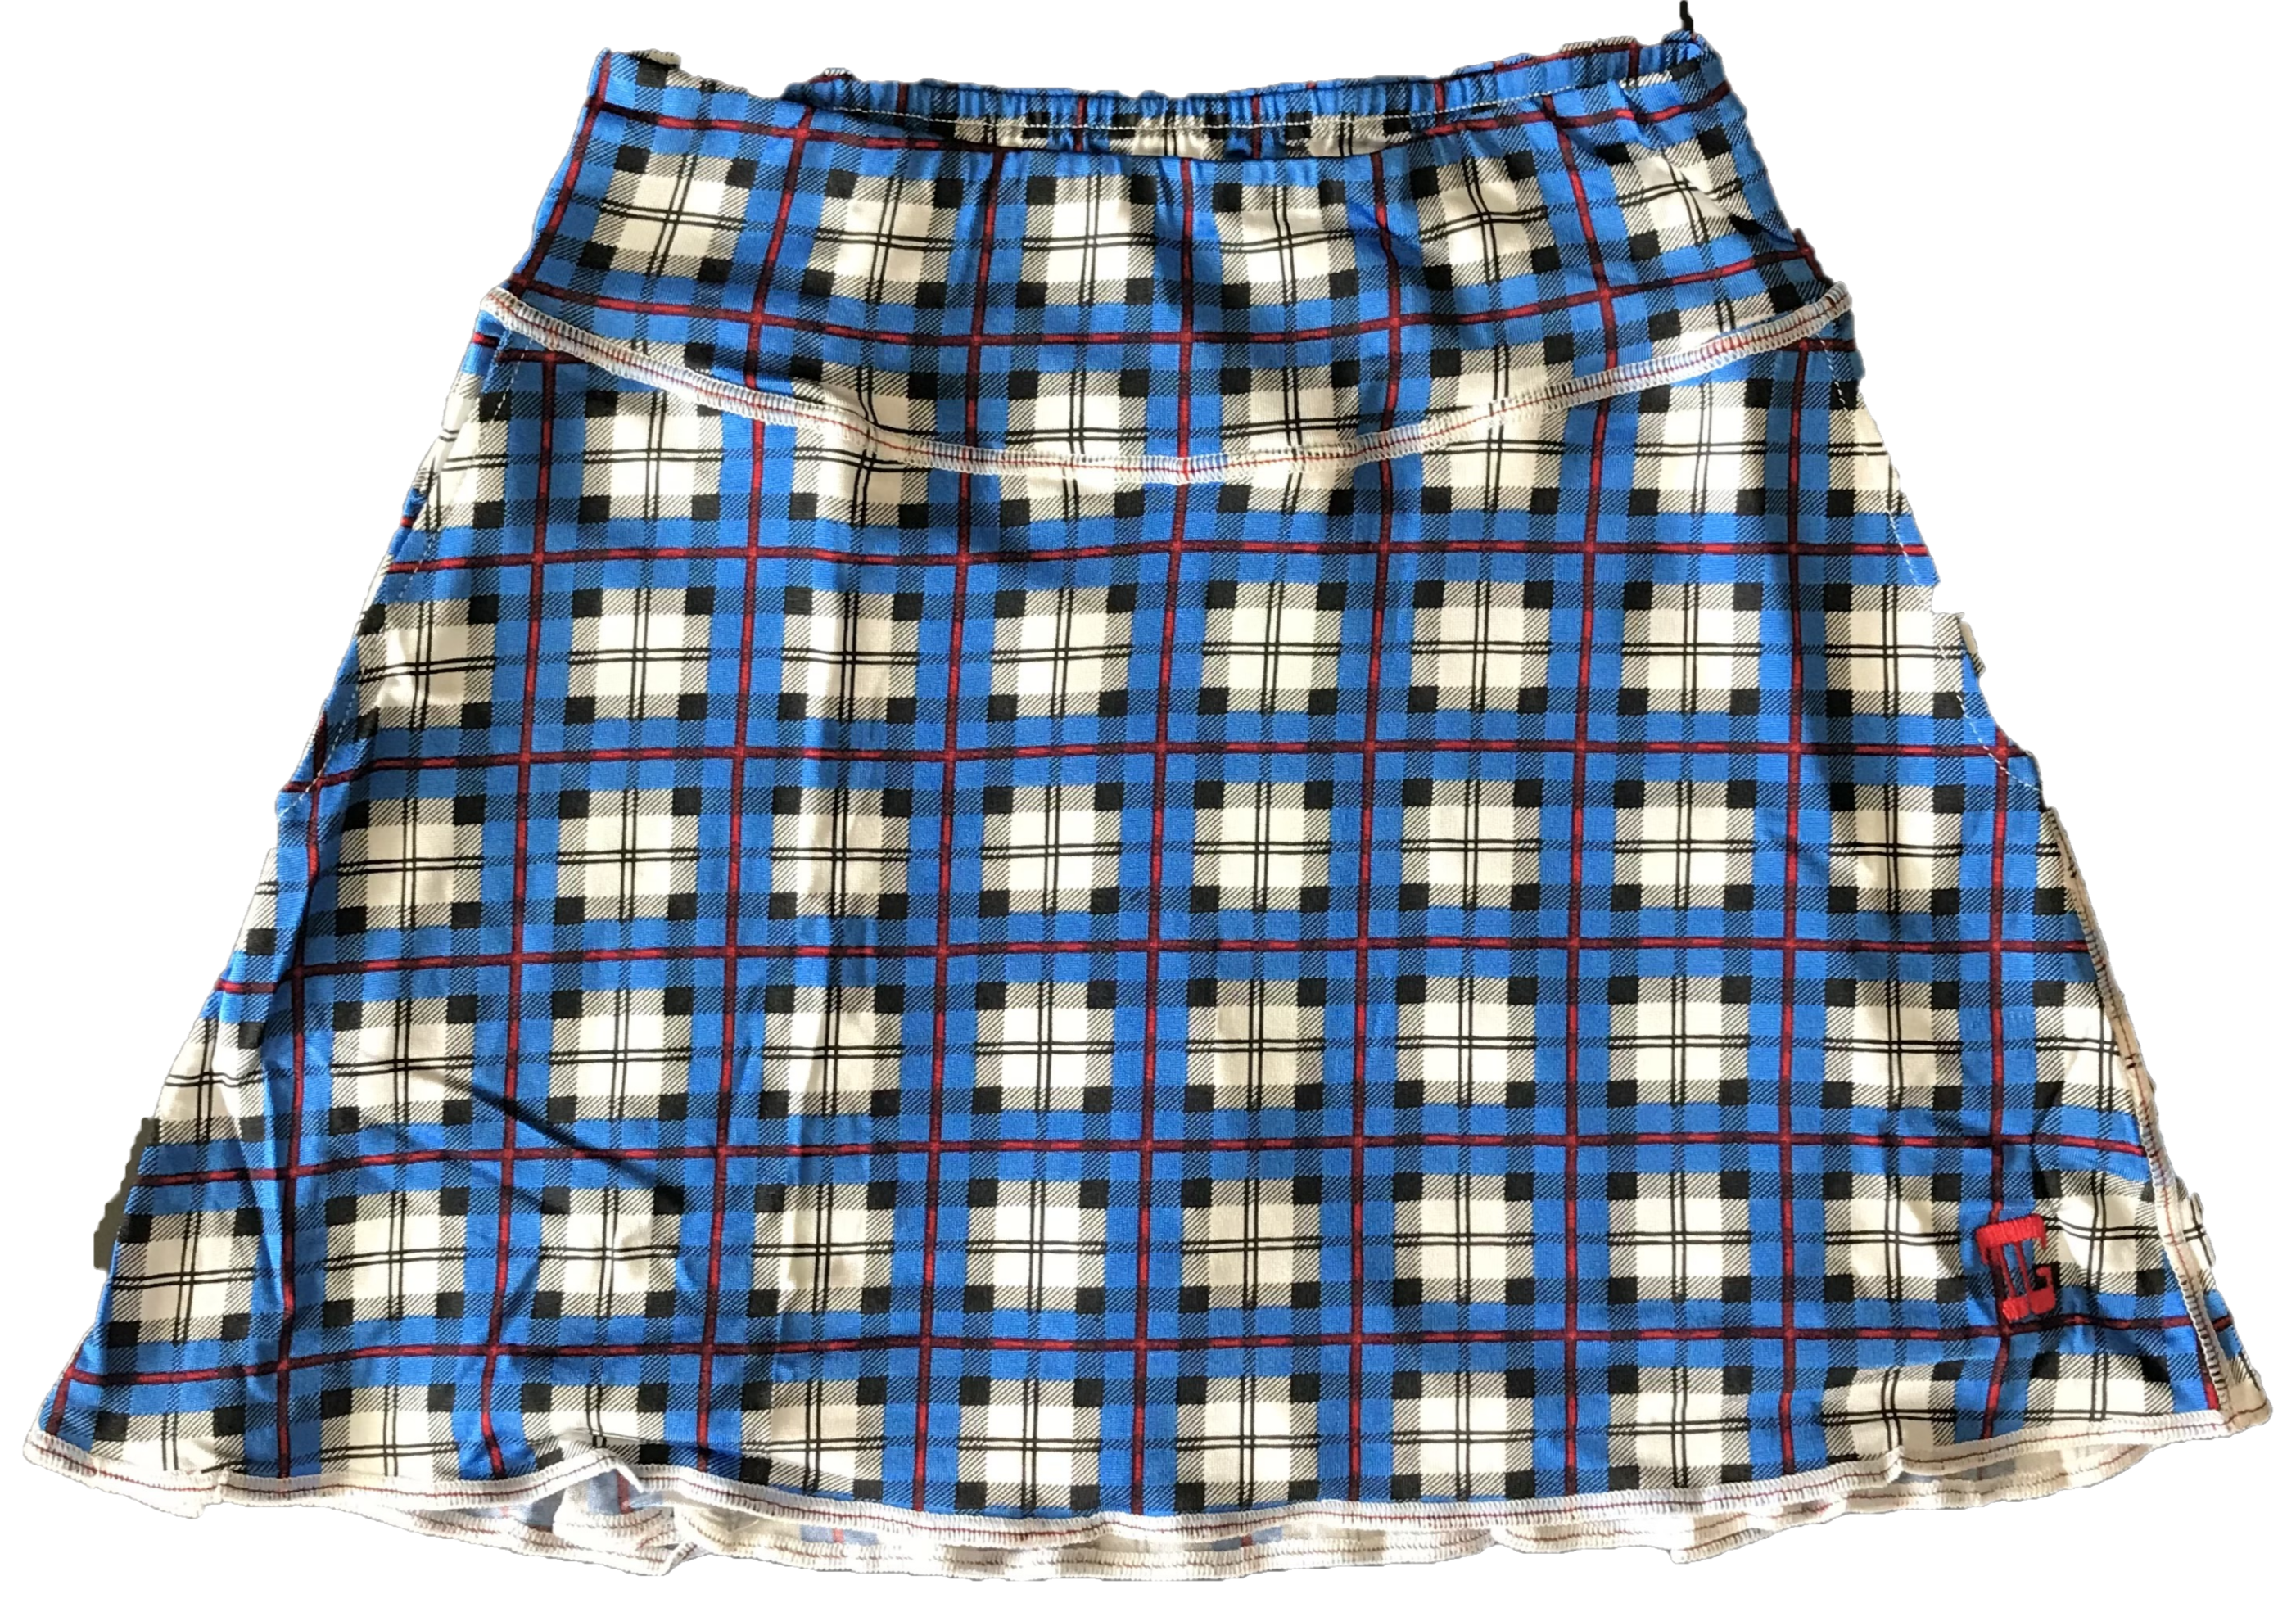 LS-043D    Skirt Blue With  Red Lined Black, Grey & White Tartan Motif 2 Side Pockets & Pleated Rear Panel